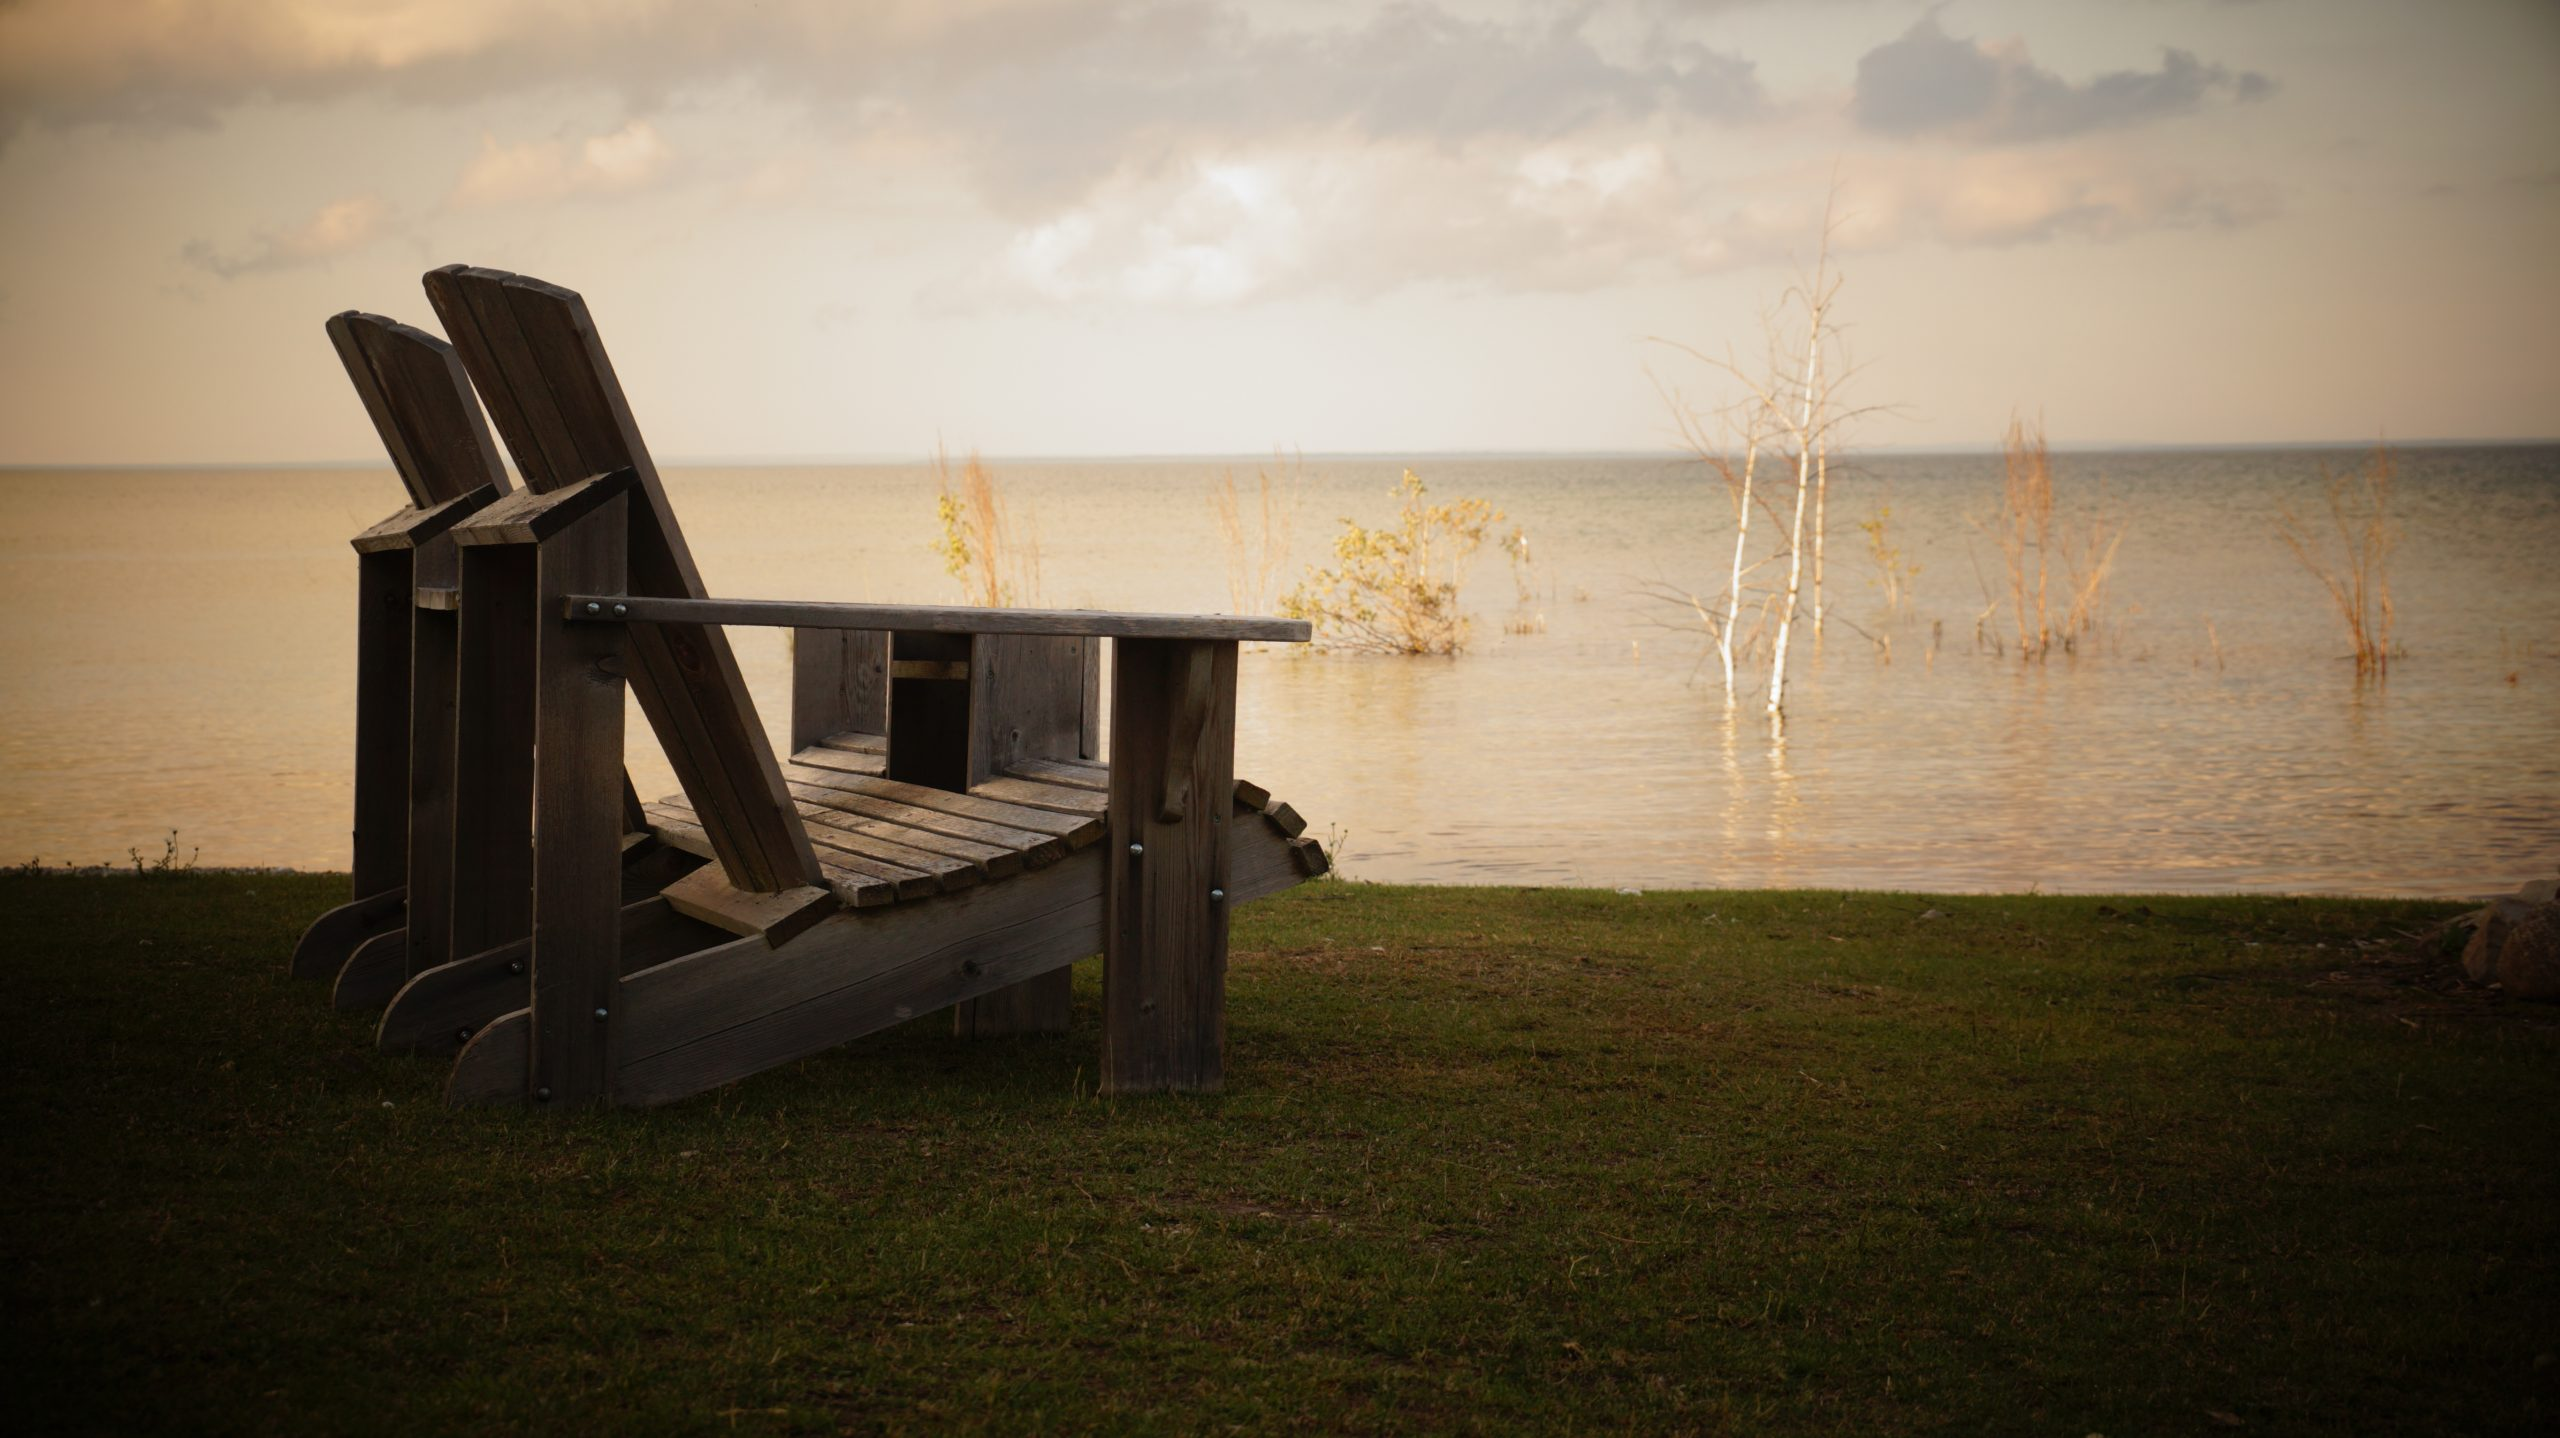 A wooden chair near a lake